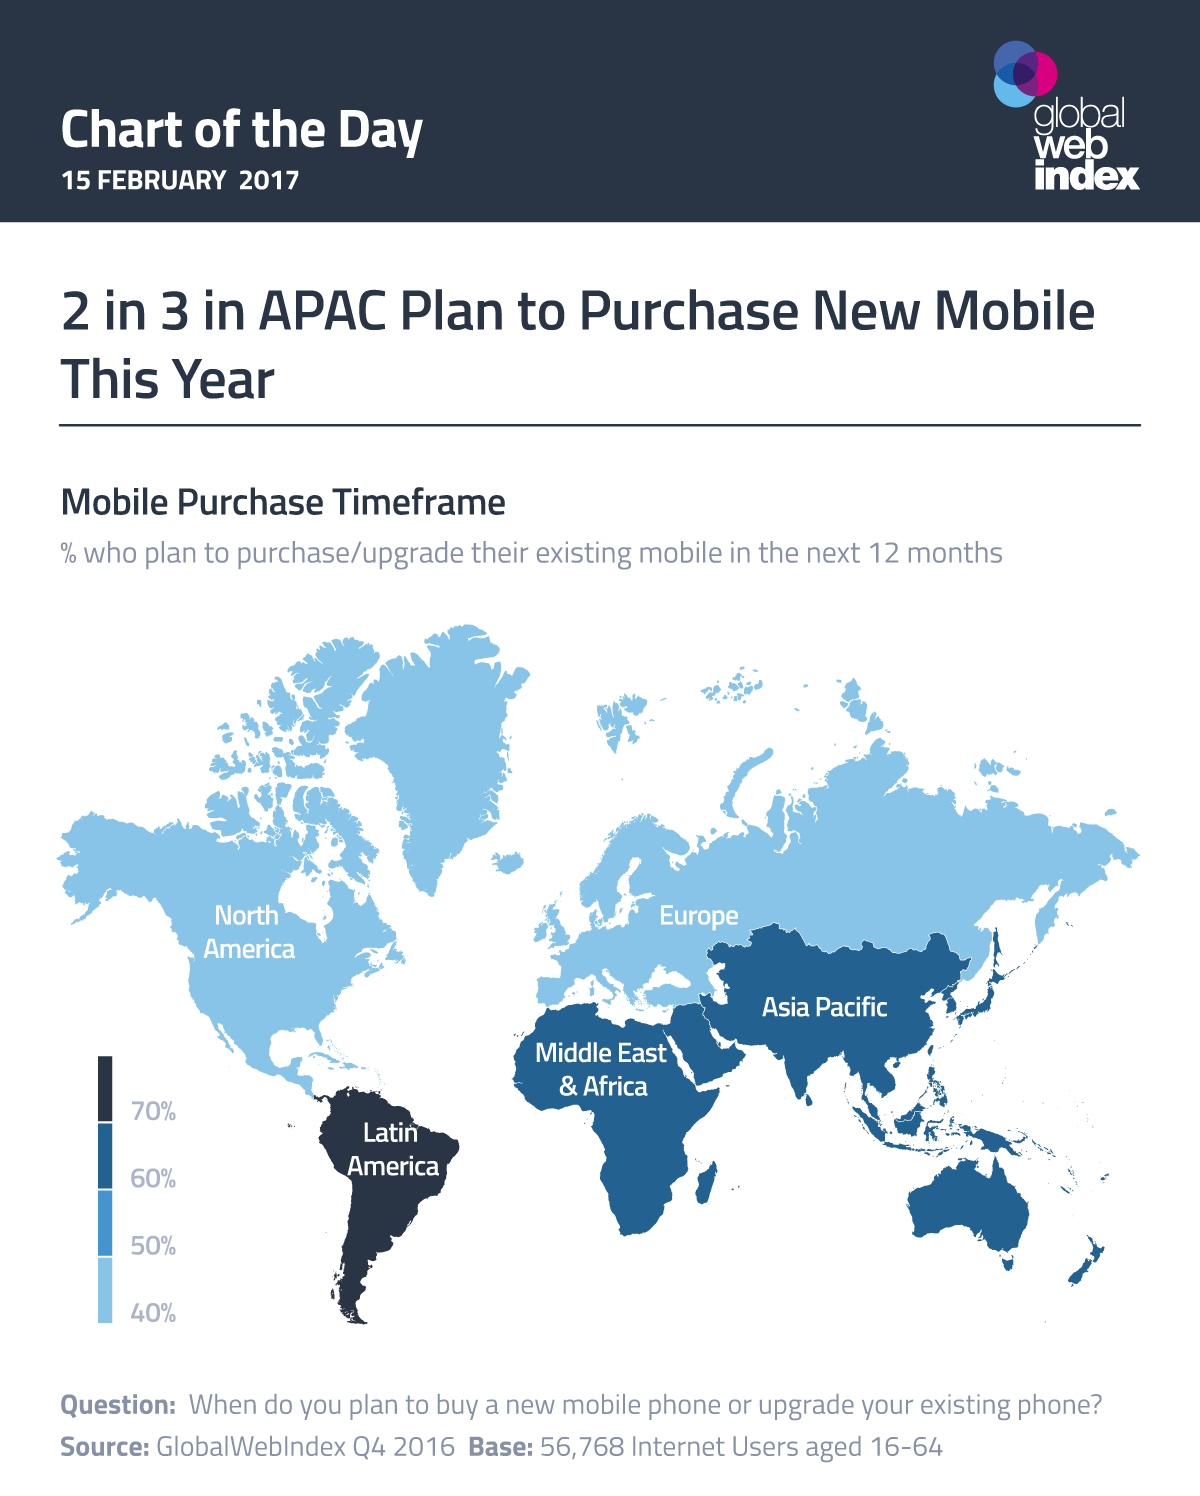 2 in 3 in APAC Plan to Purchase New Mobile This Year